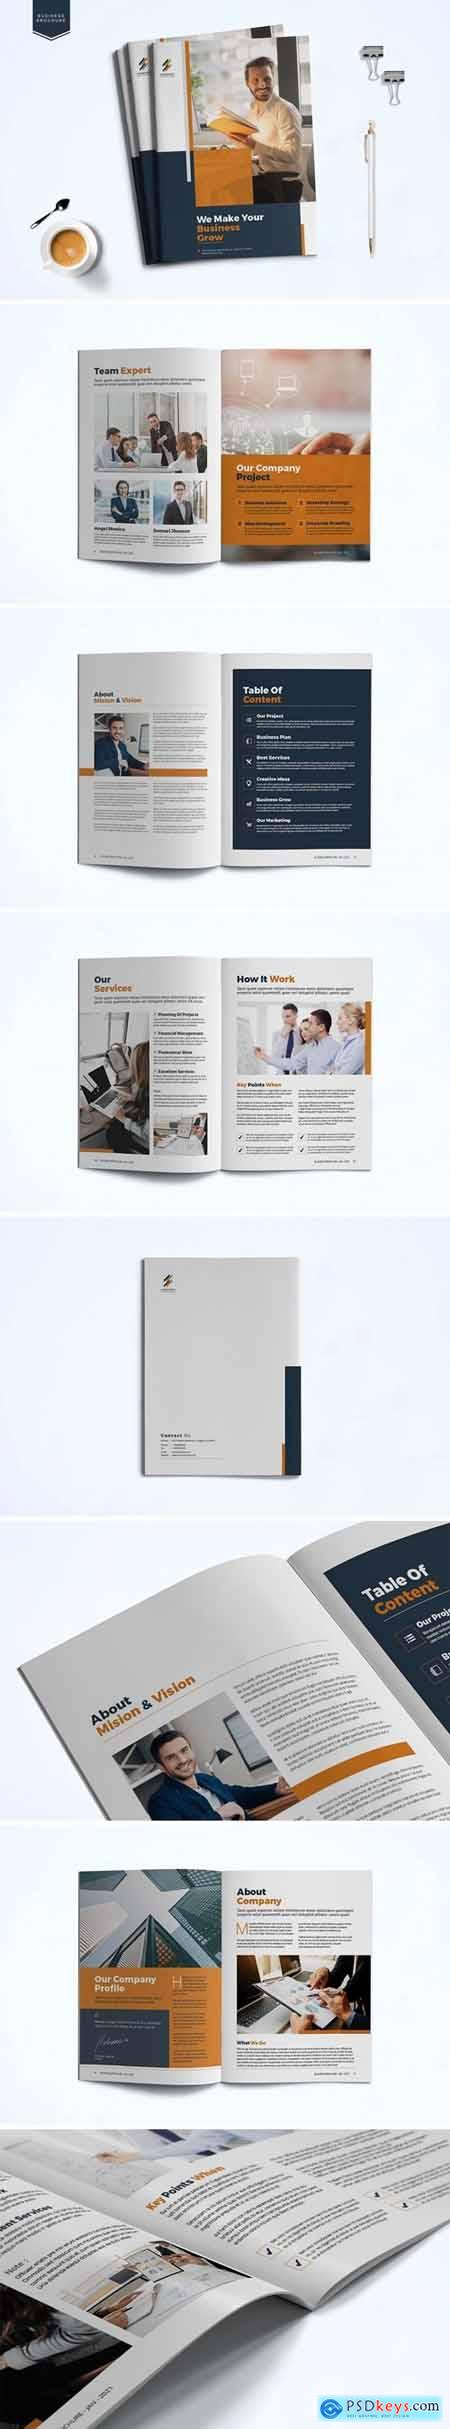 Business Brochure Template LGRG92K